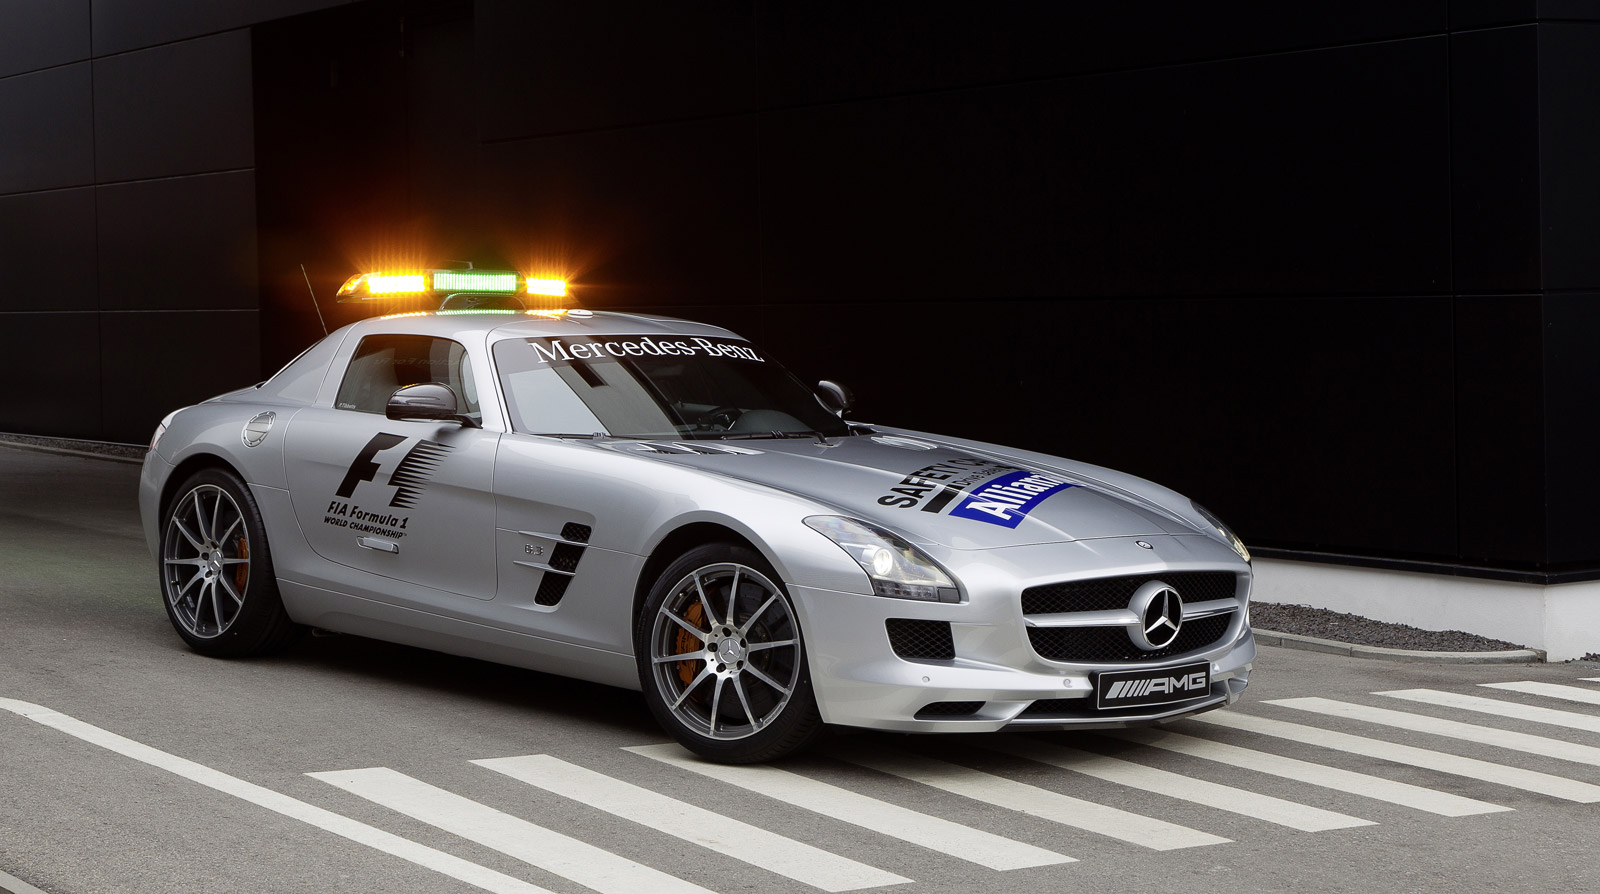 mercedes benz sls amg and c63 amg back on f1 safety duty. Black Bedroom Furniture Sets. Home Design Ideas